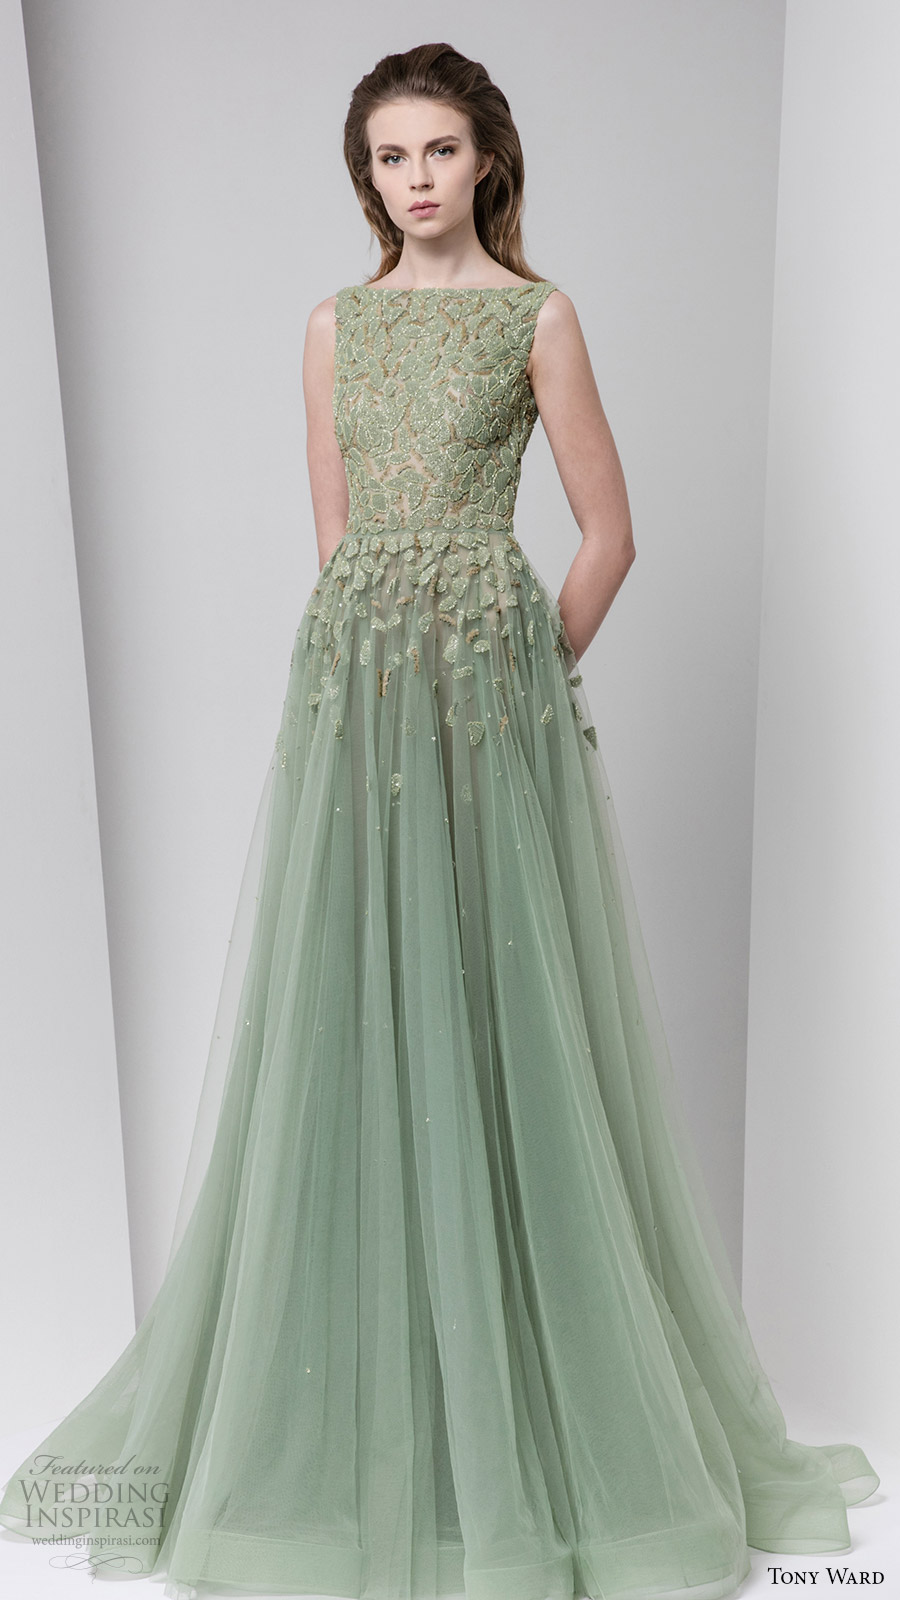 Tony Ward Fall Winter 2016 2017 Rtw Sleeveless Bateau Neckline Ball Gown A Line Evening Dress